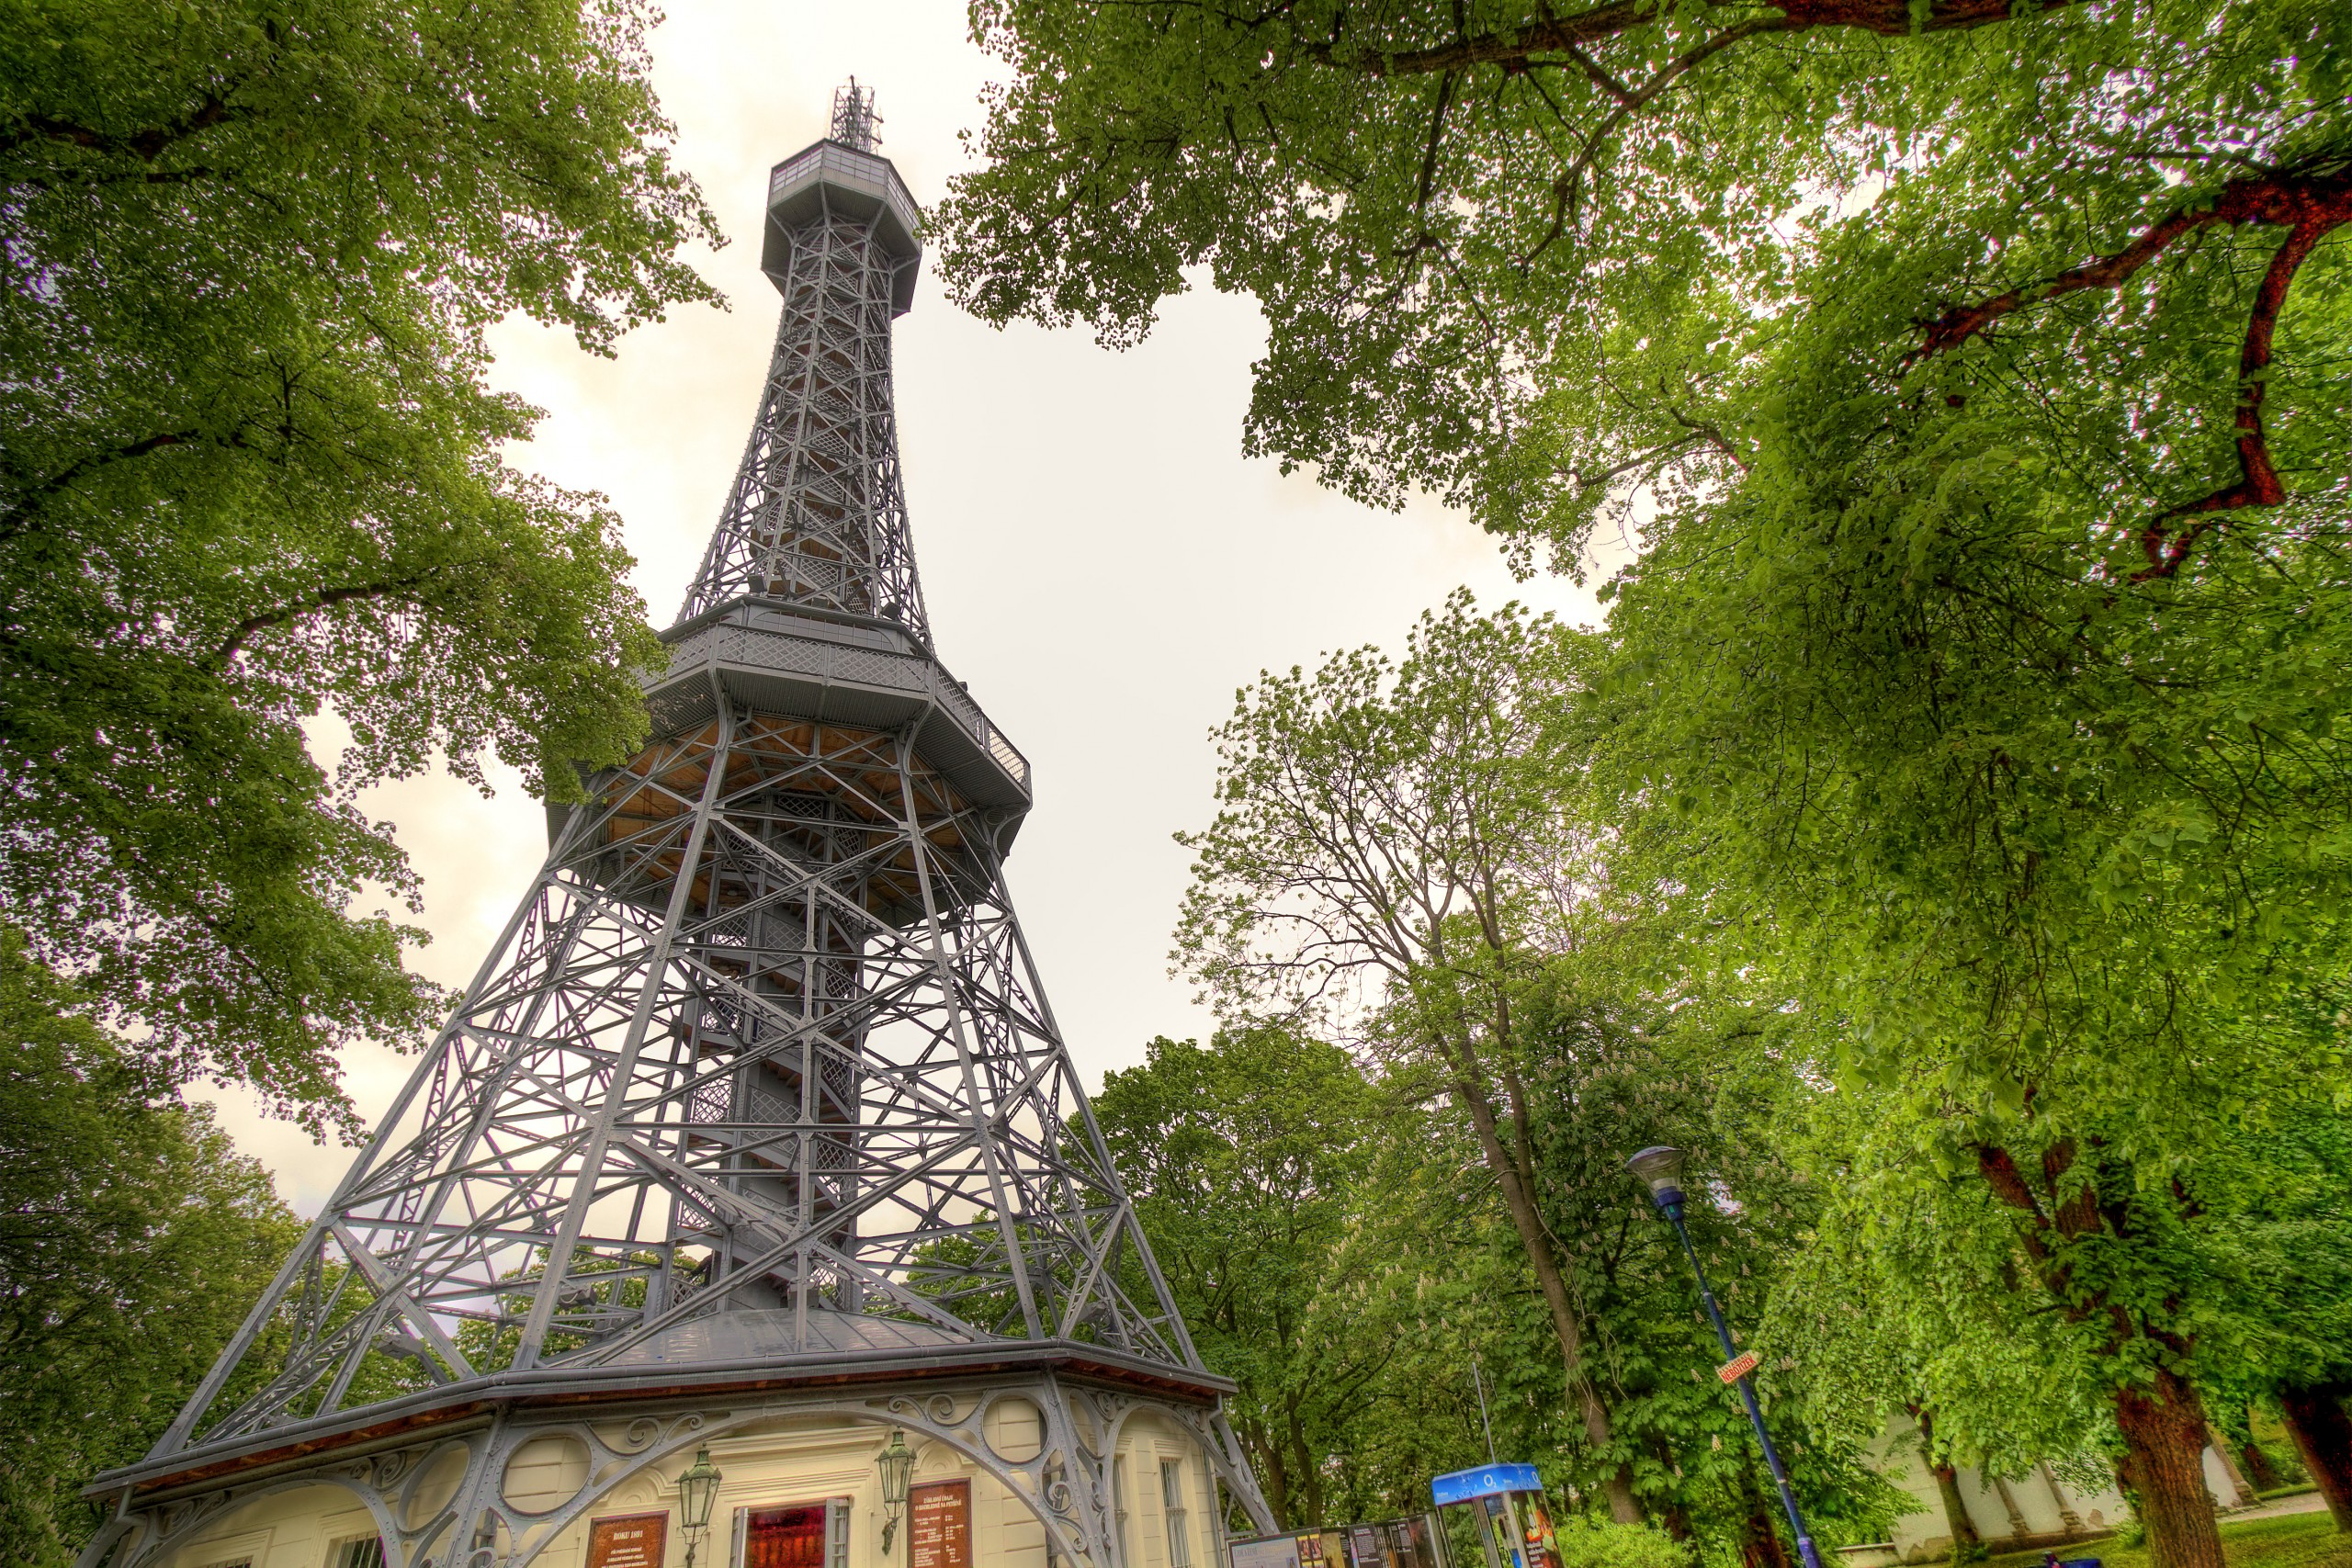 Small but cute lookout tower of Prague